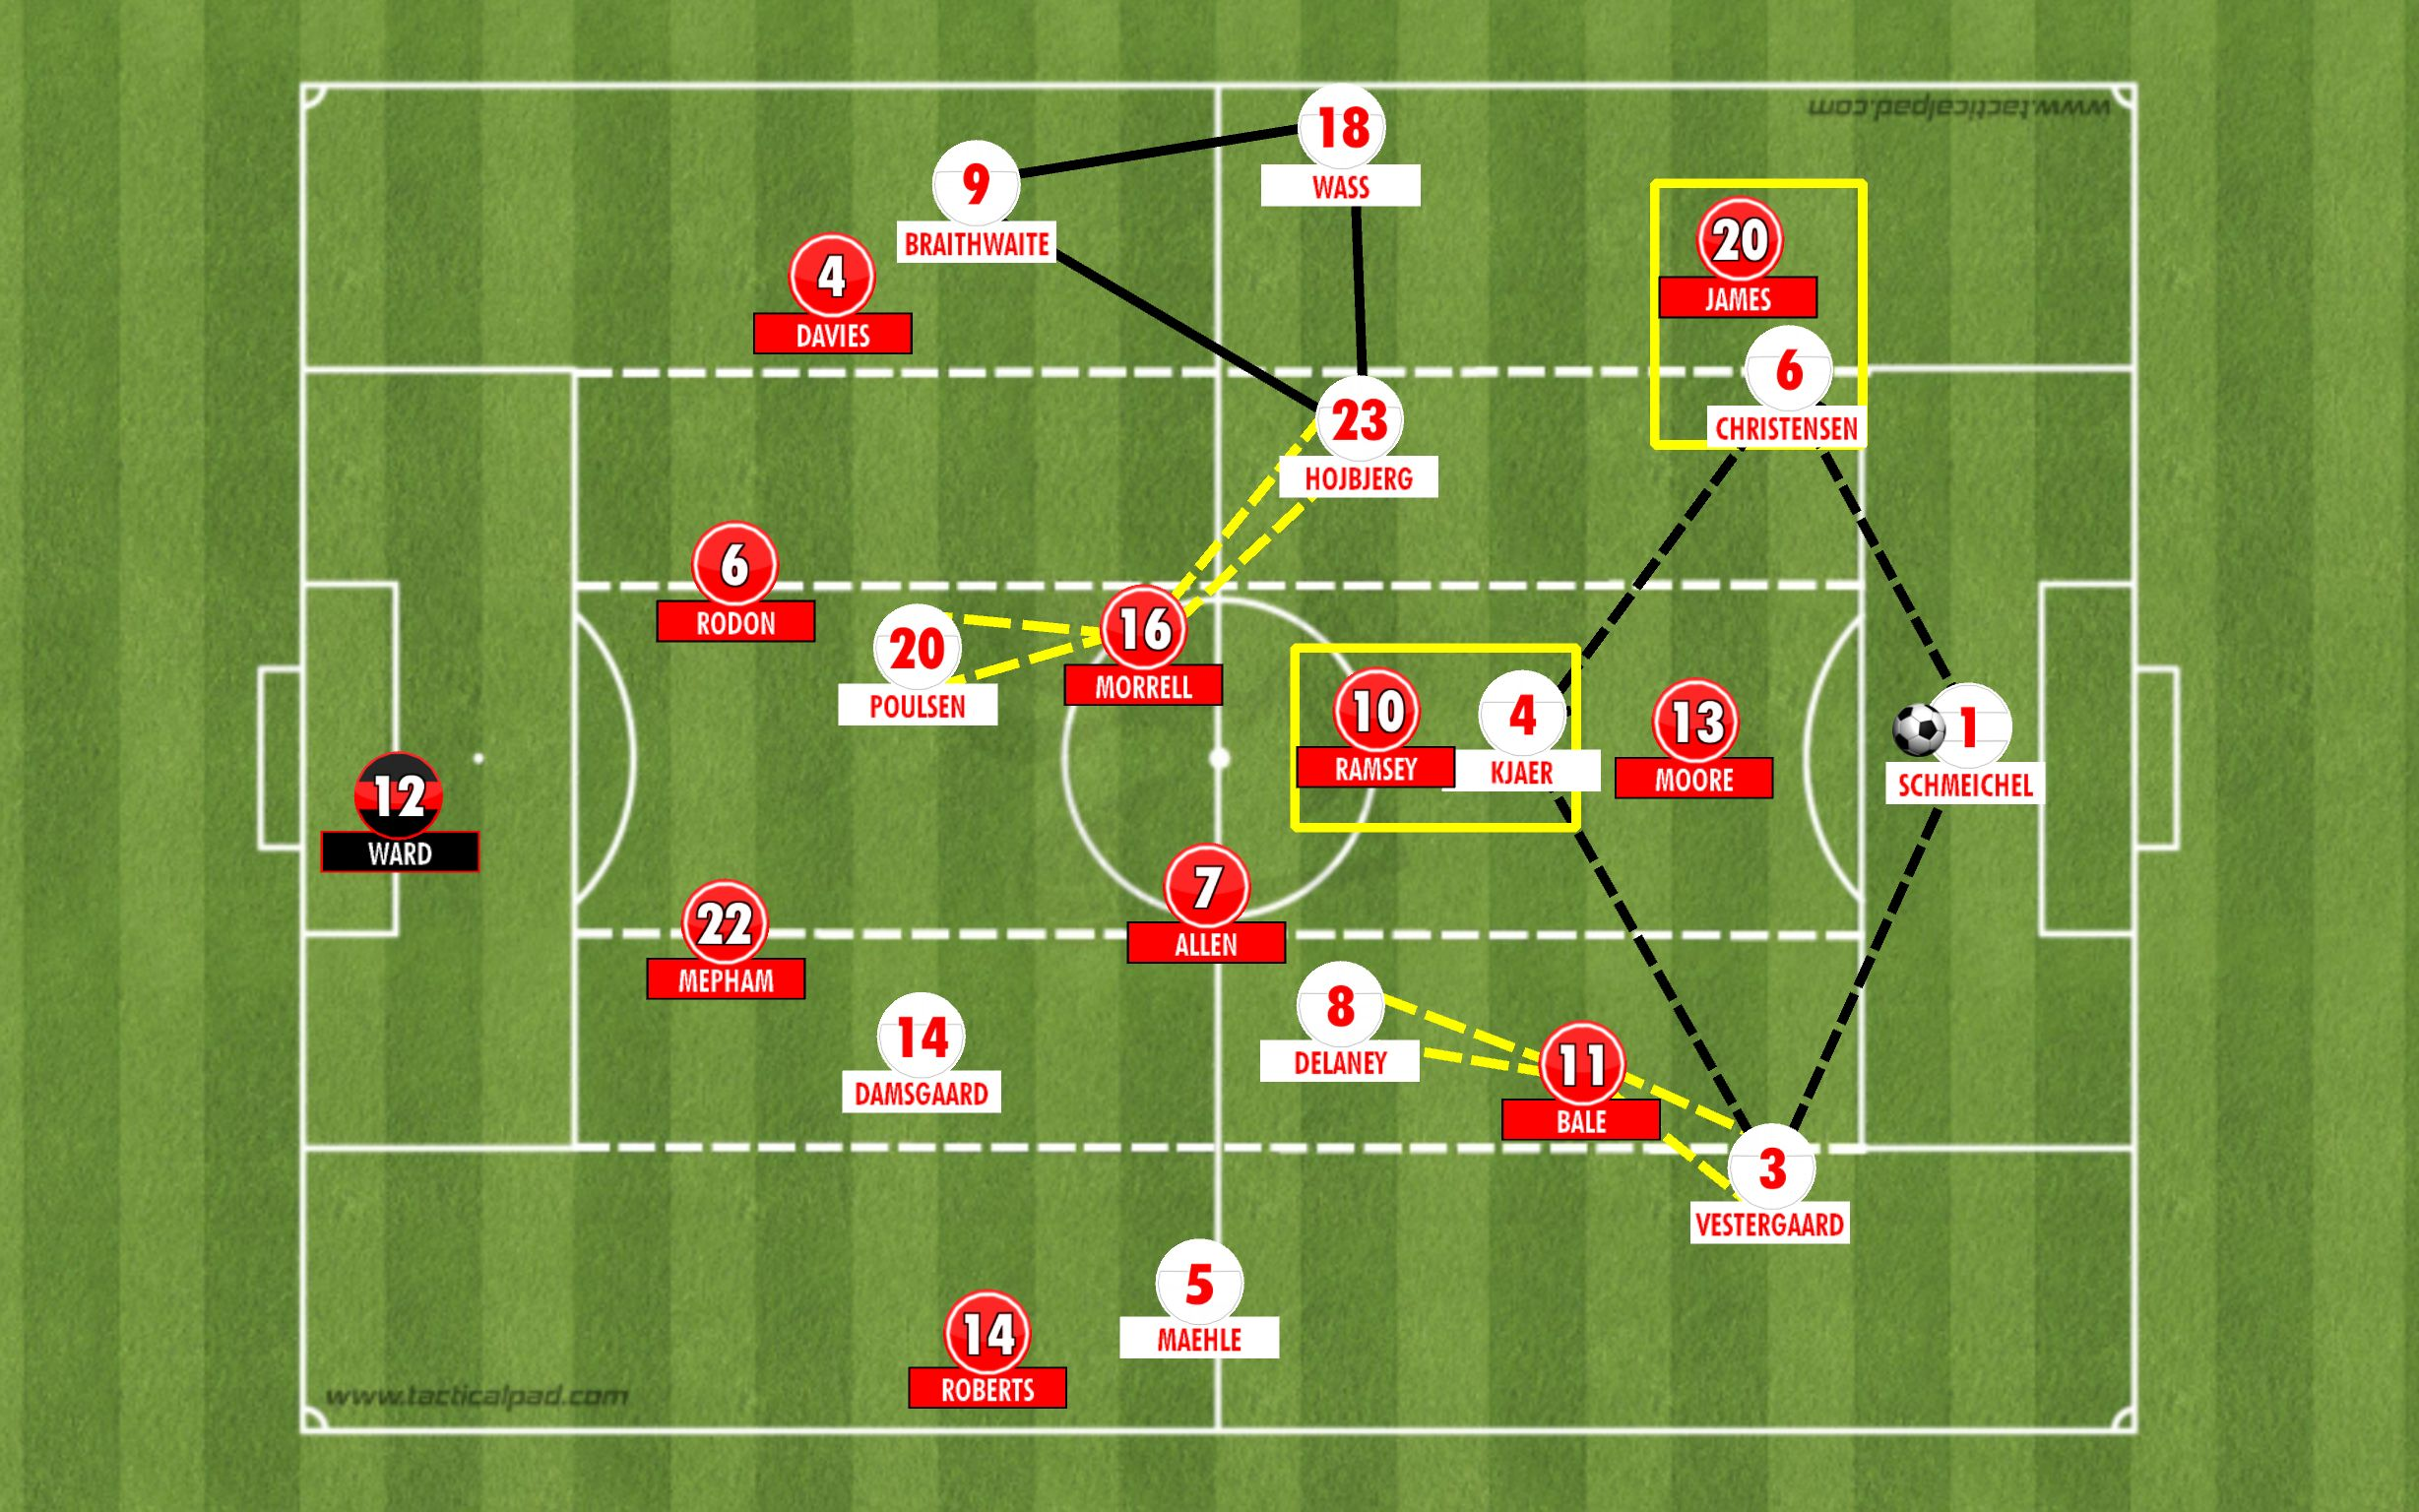 denmark play out from defense